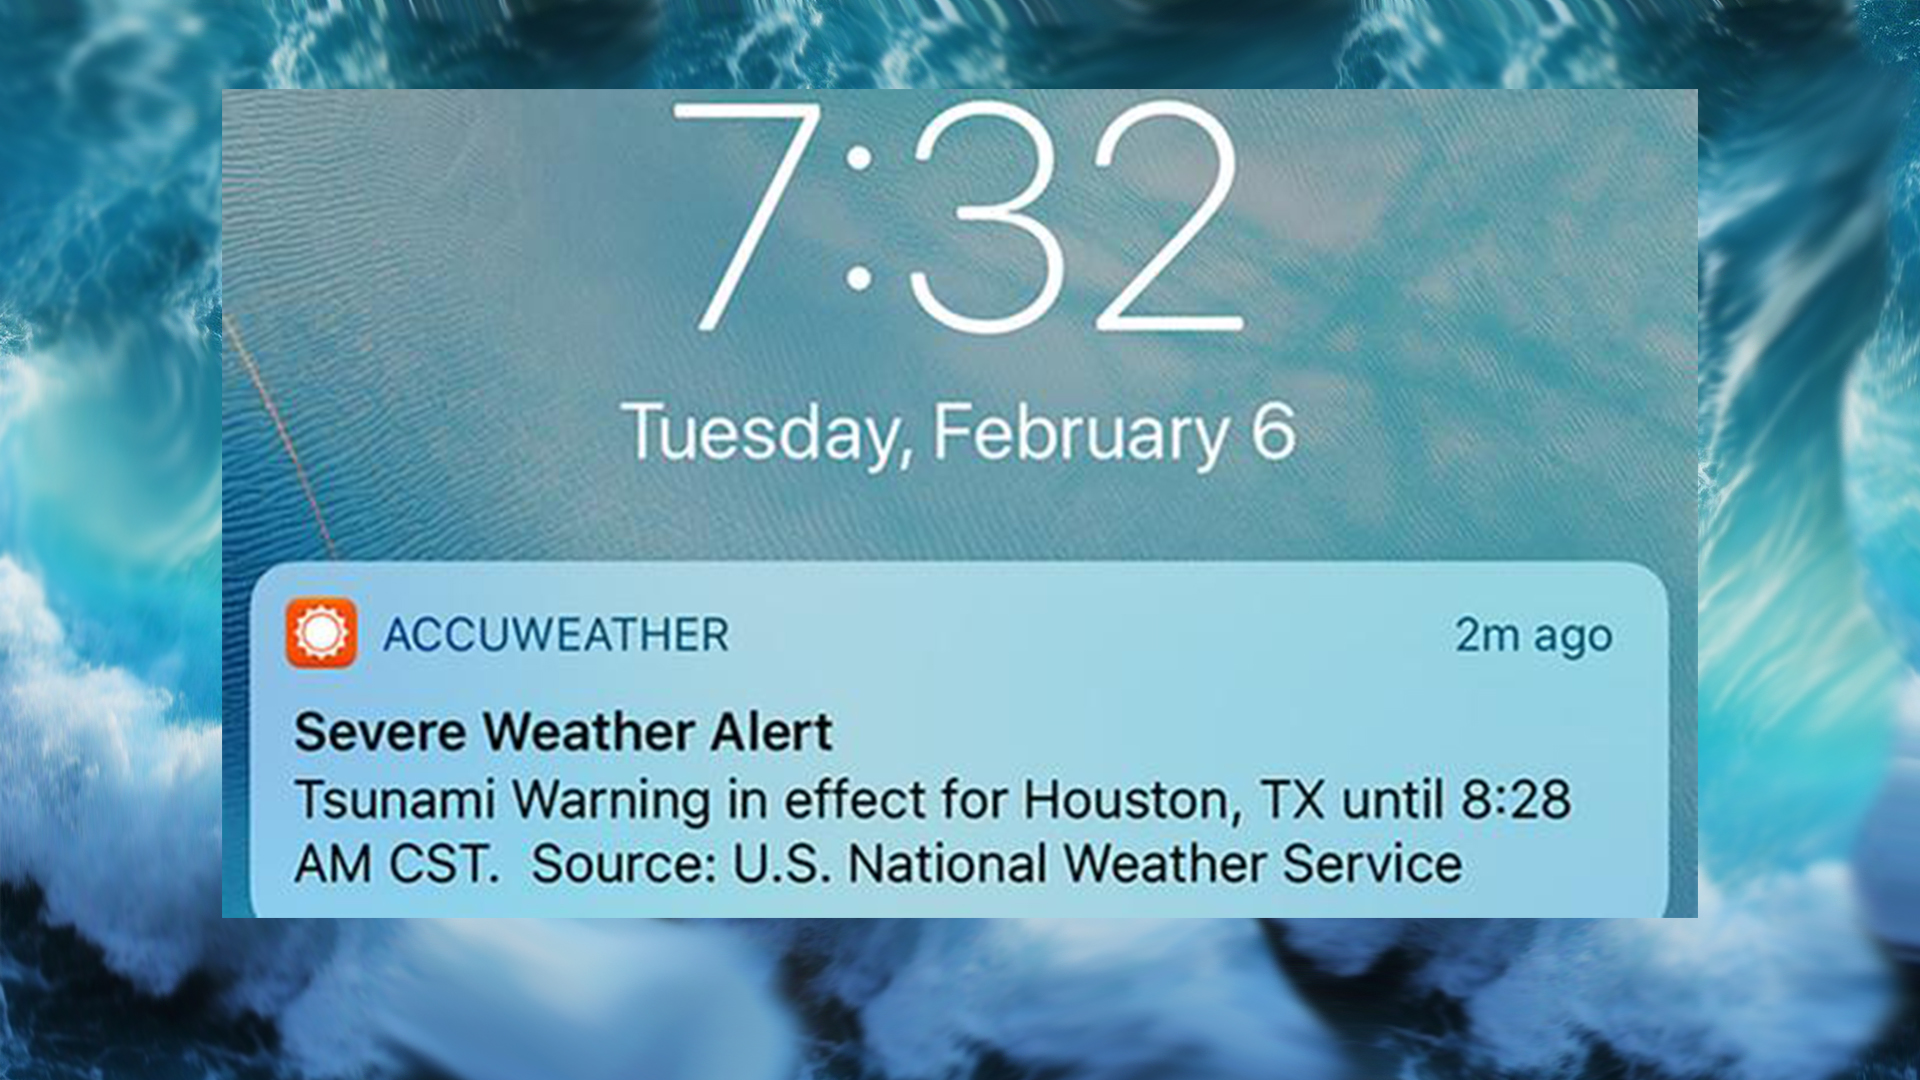 tsunami warning alert issued this morning was a test